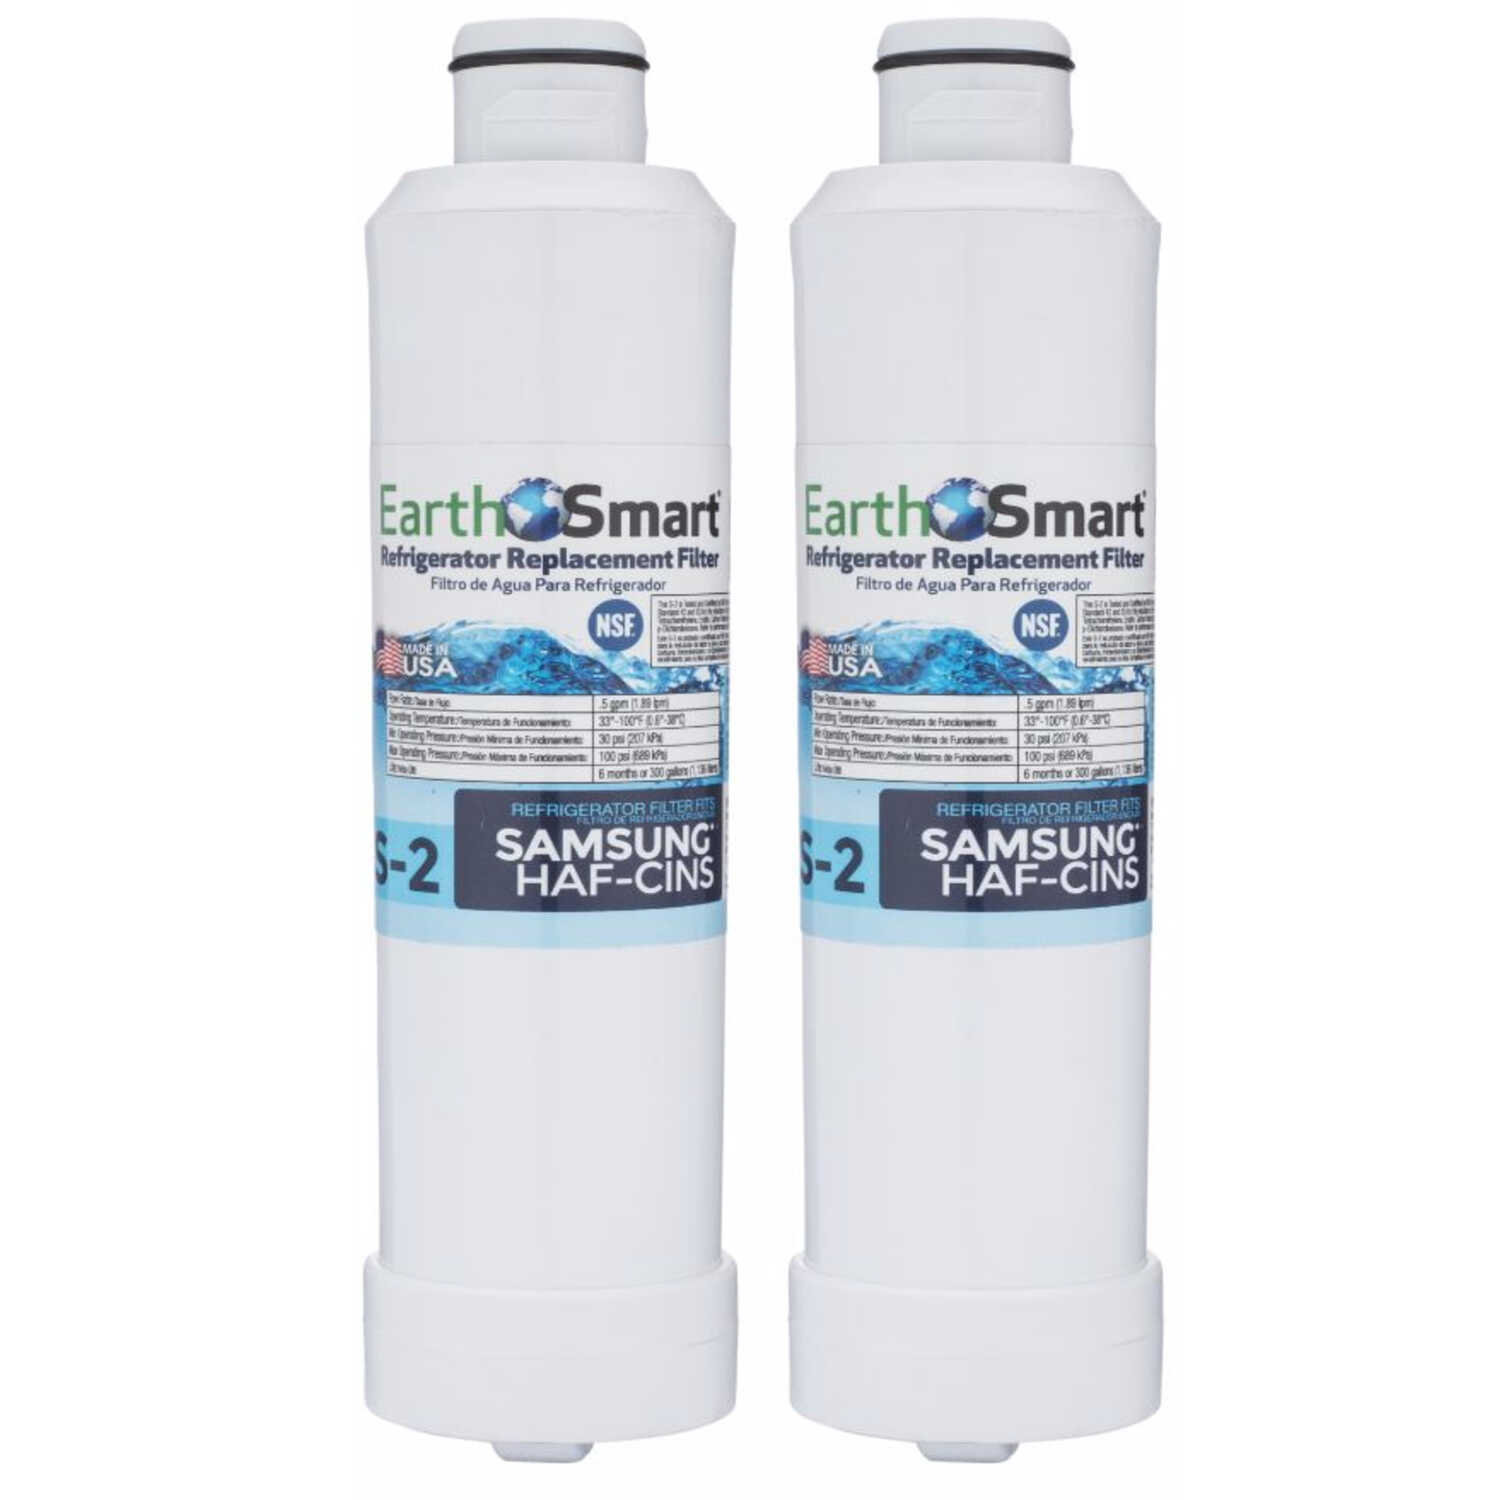 EarthSmart  S-2  Replacement Filter  For Refrigerators 300 gal.